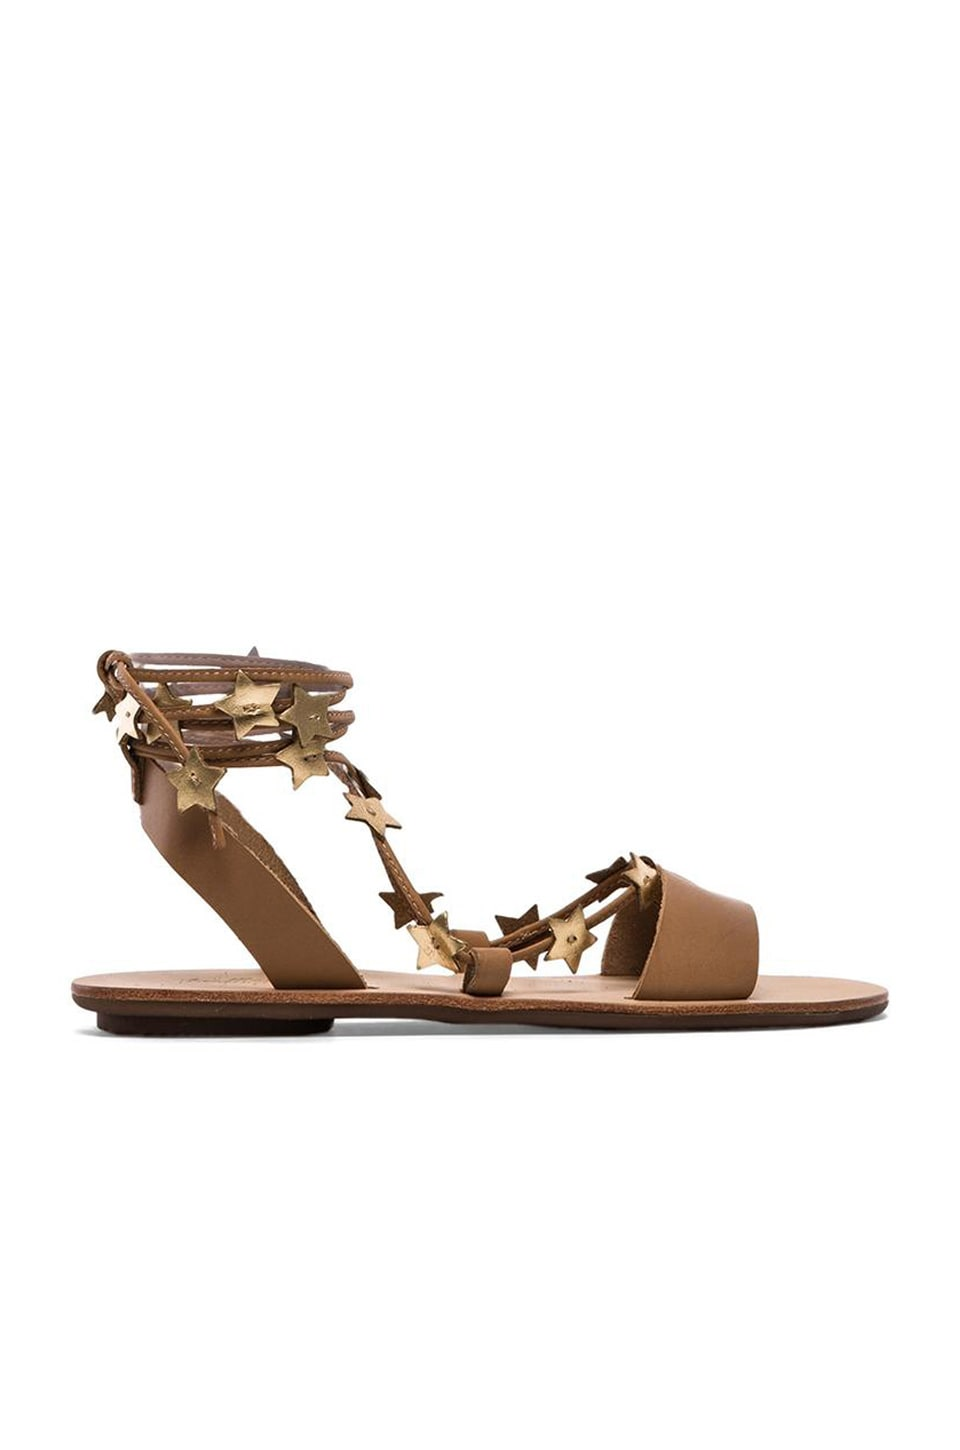 Loeffler Randall Starla Sandal in Wheat & Gold